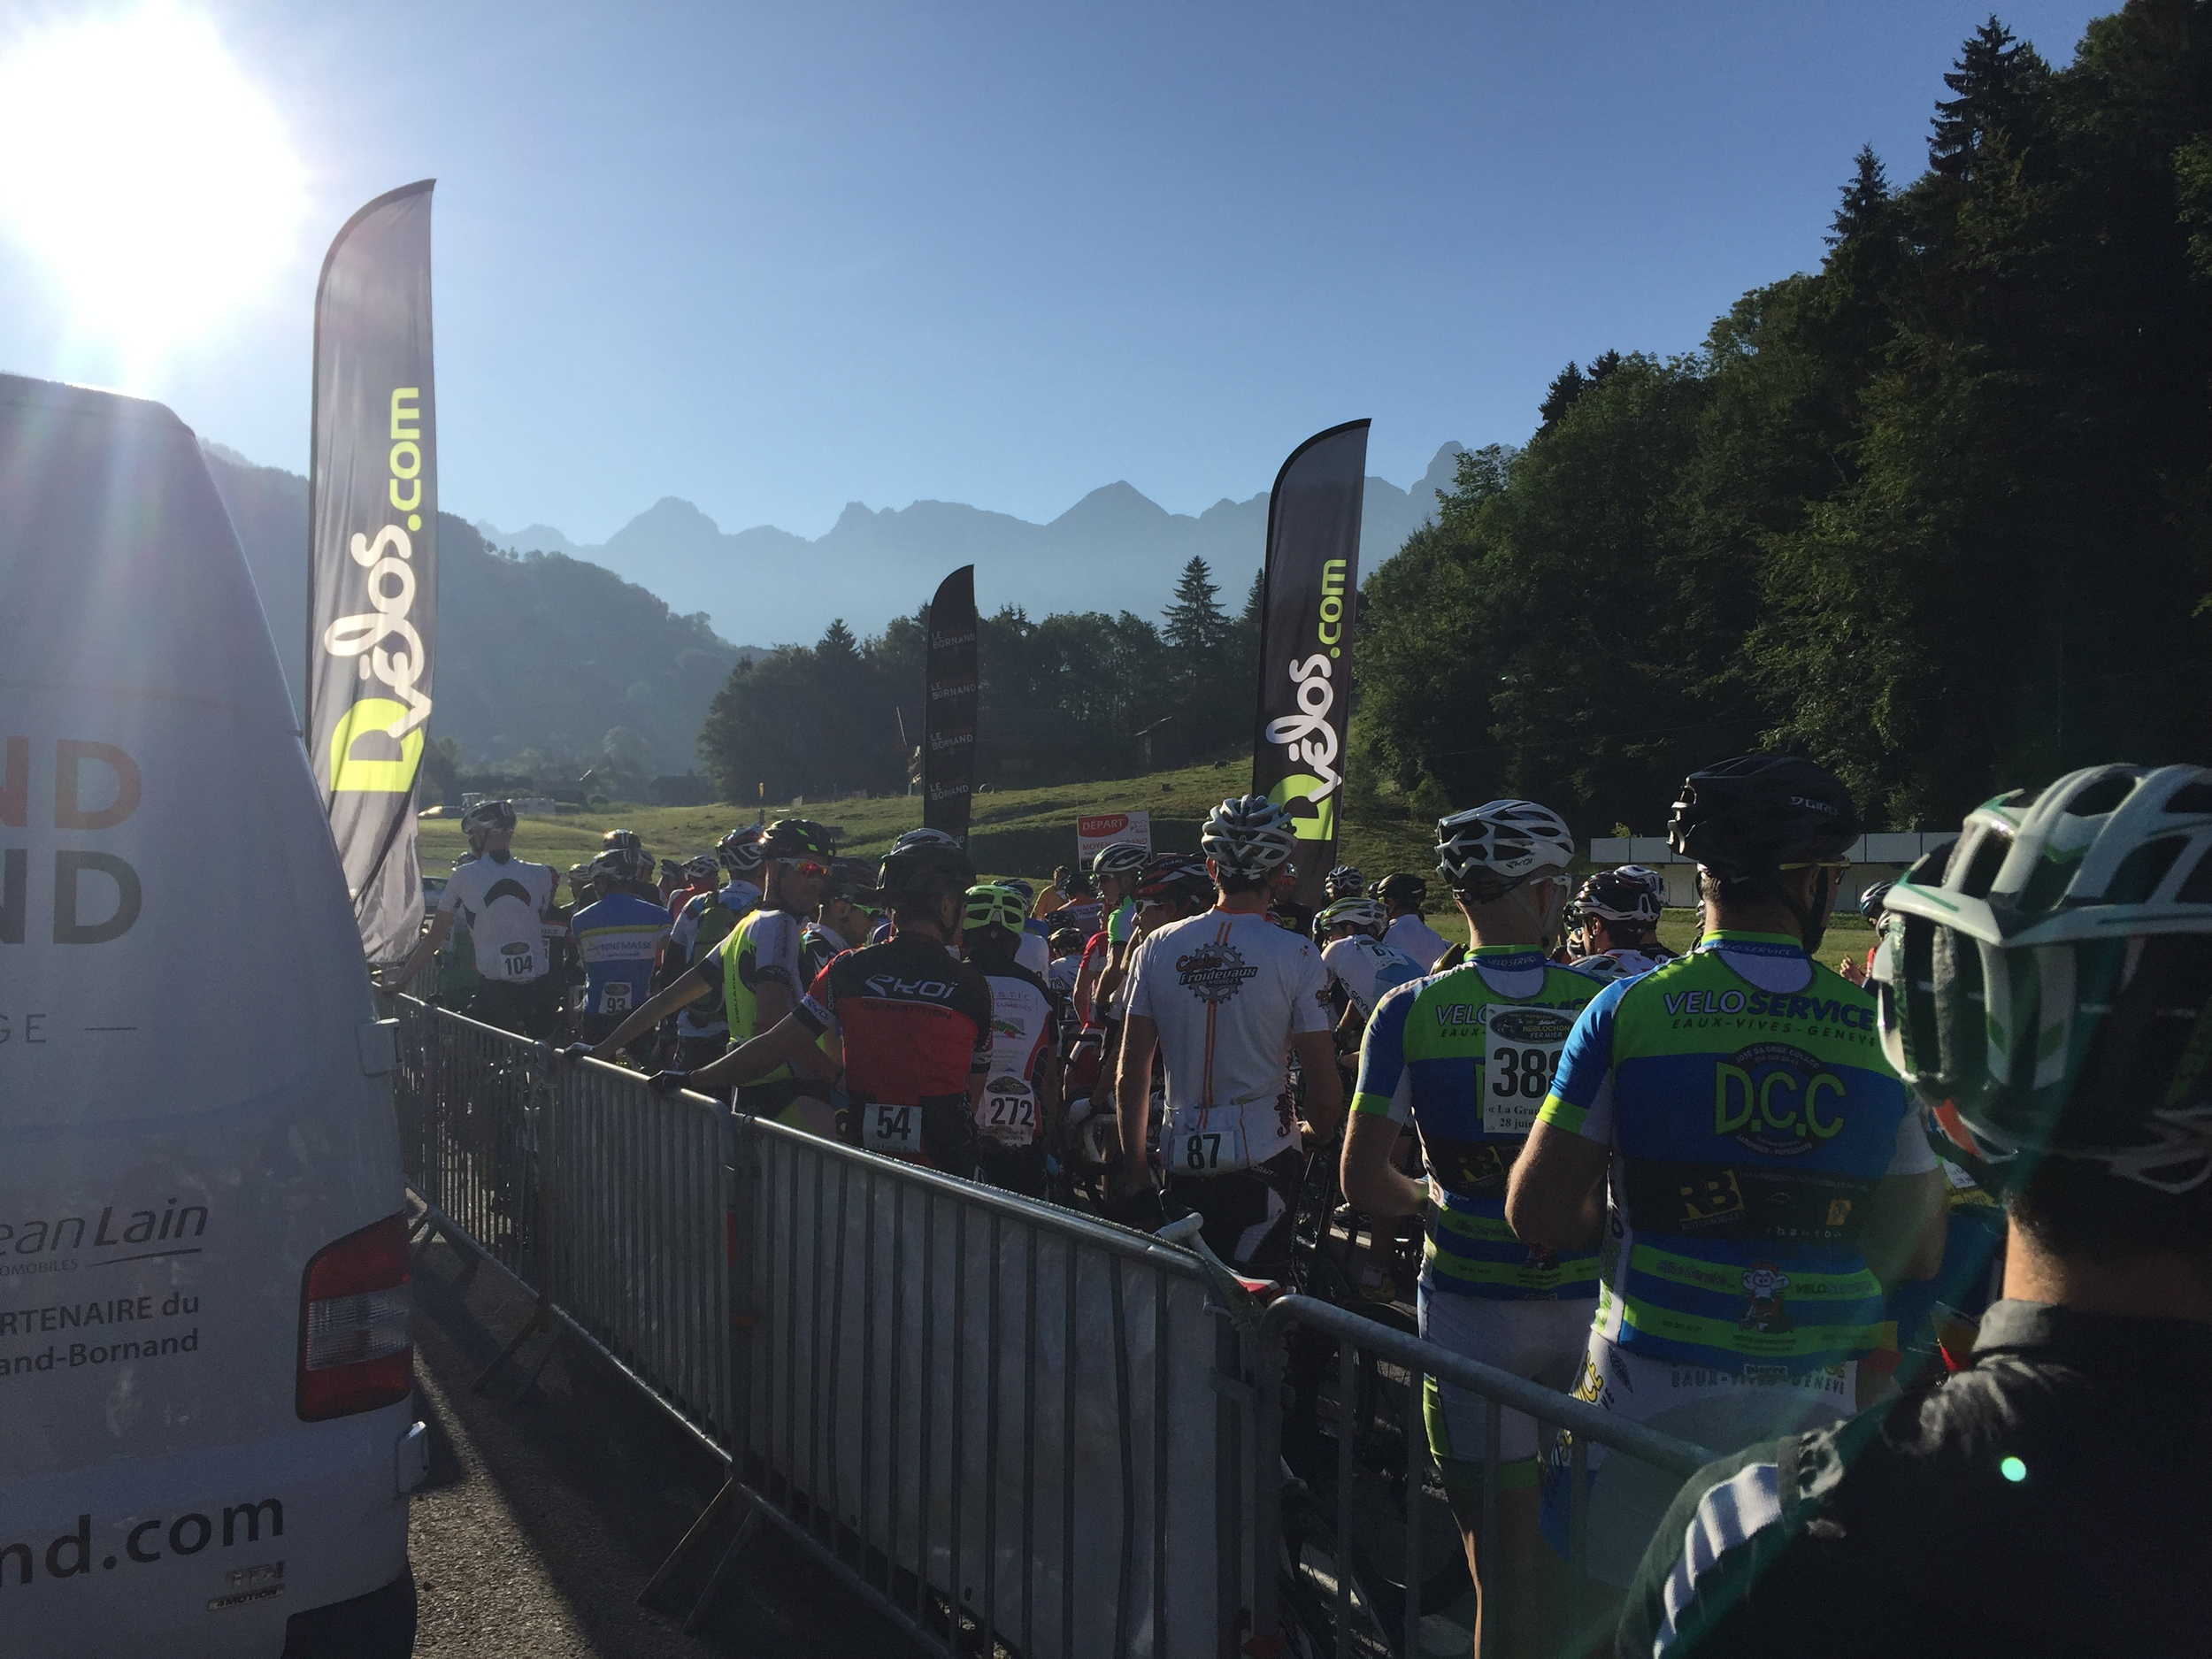 Early morning start under the mountains of the Aravis